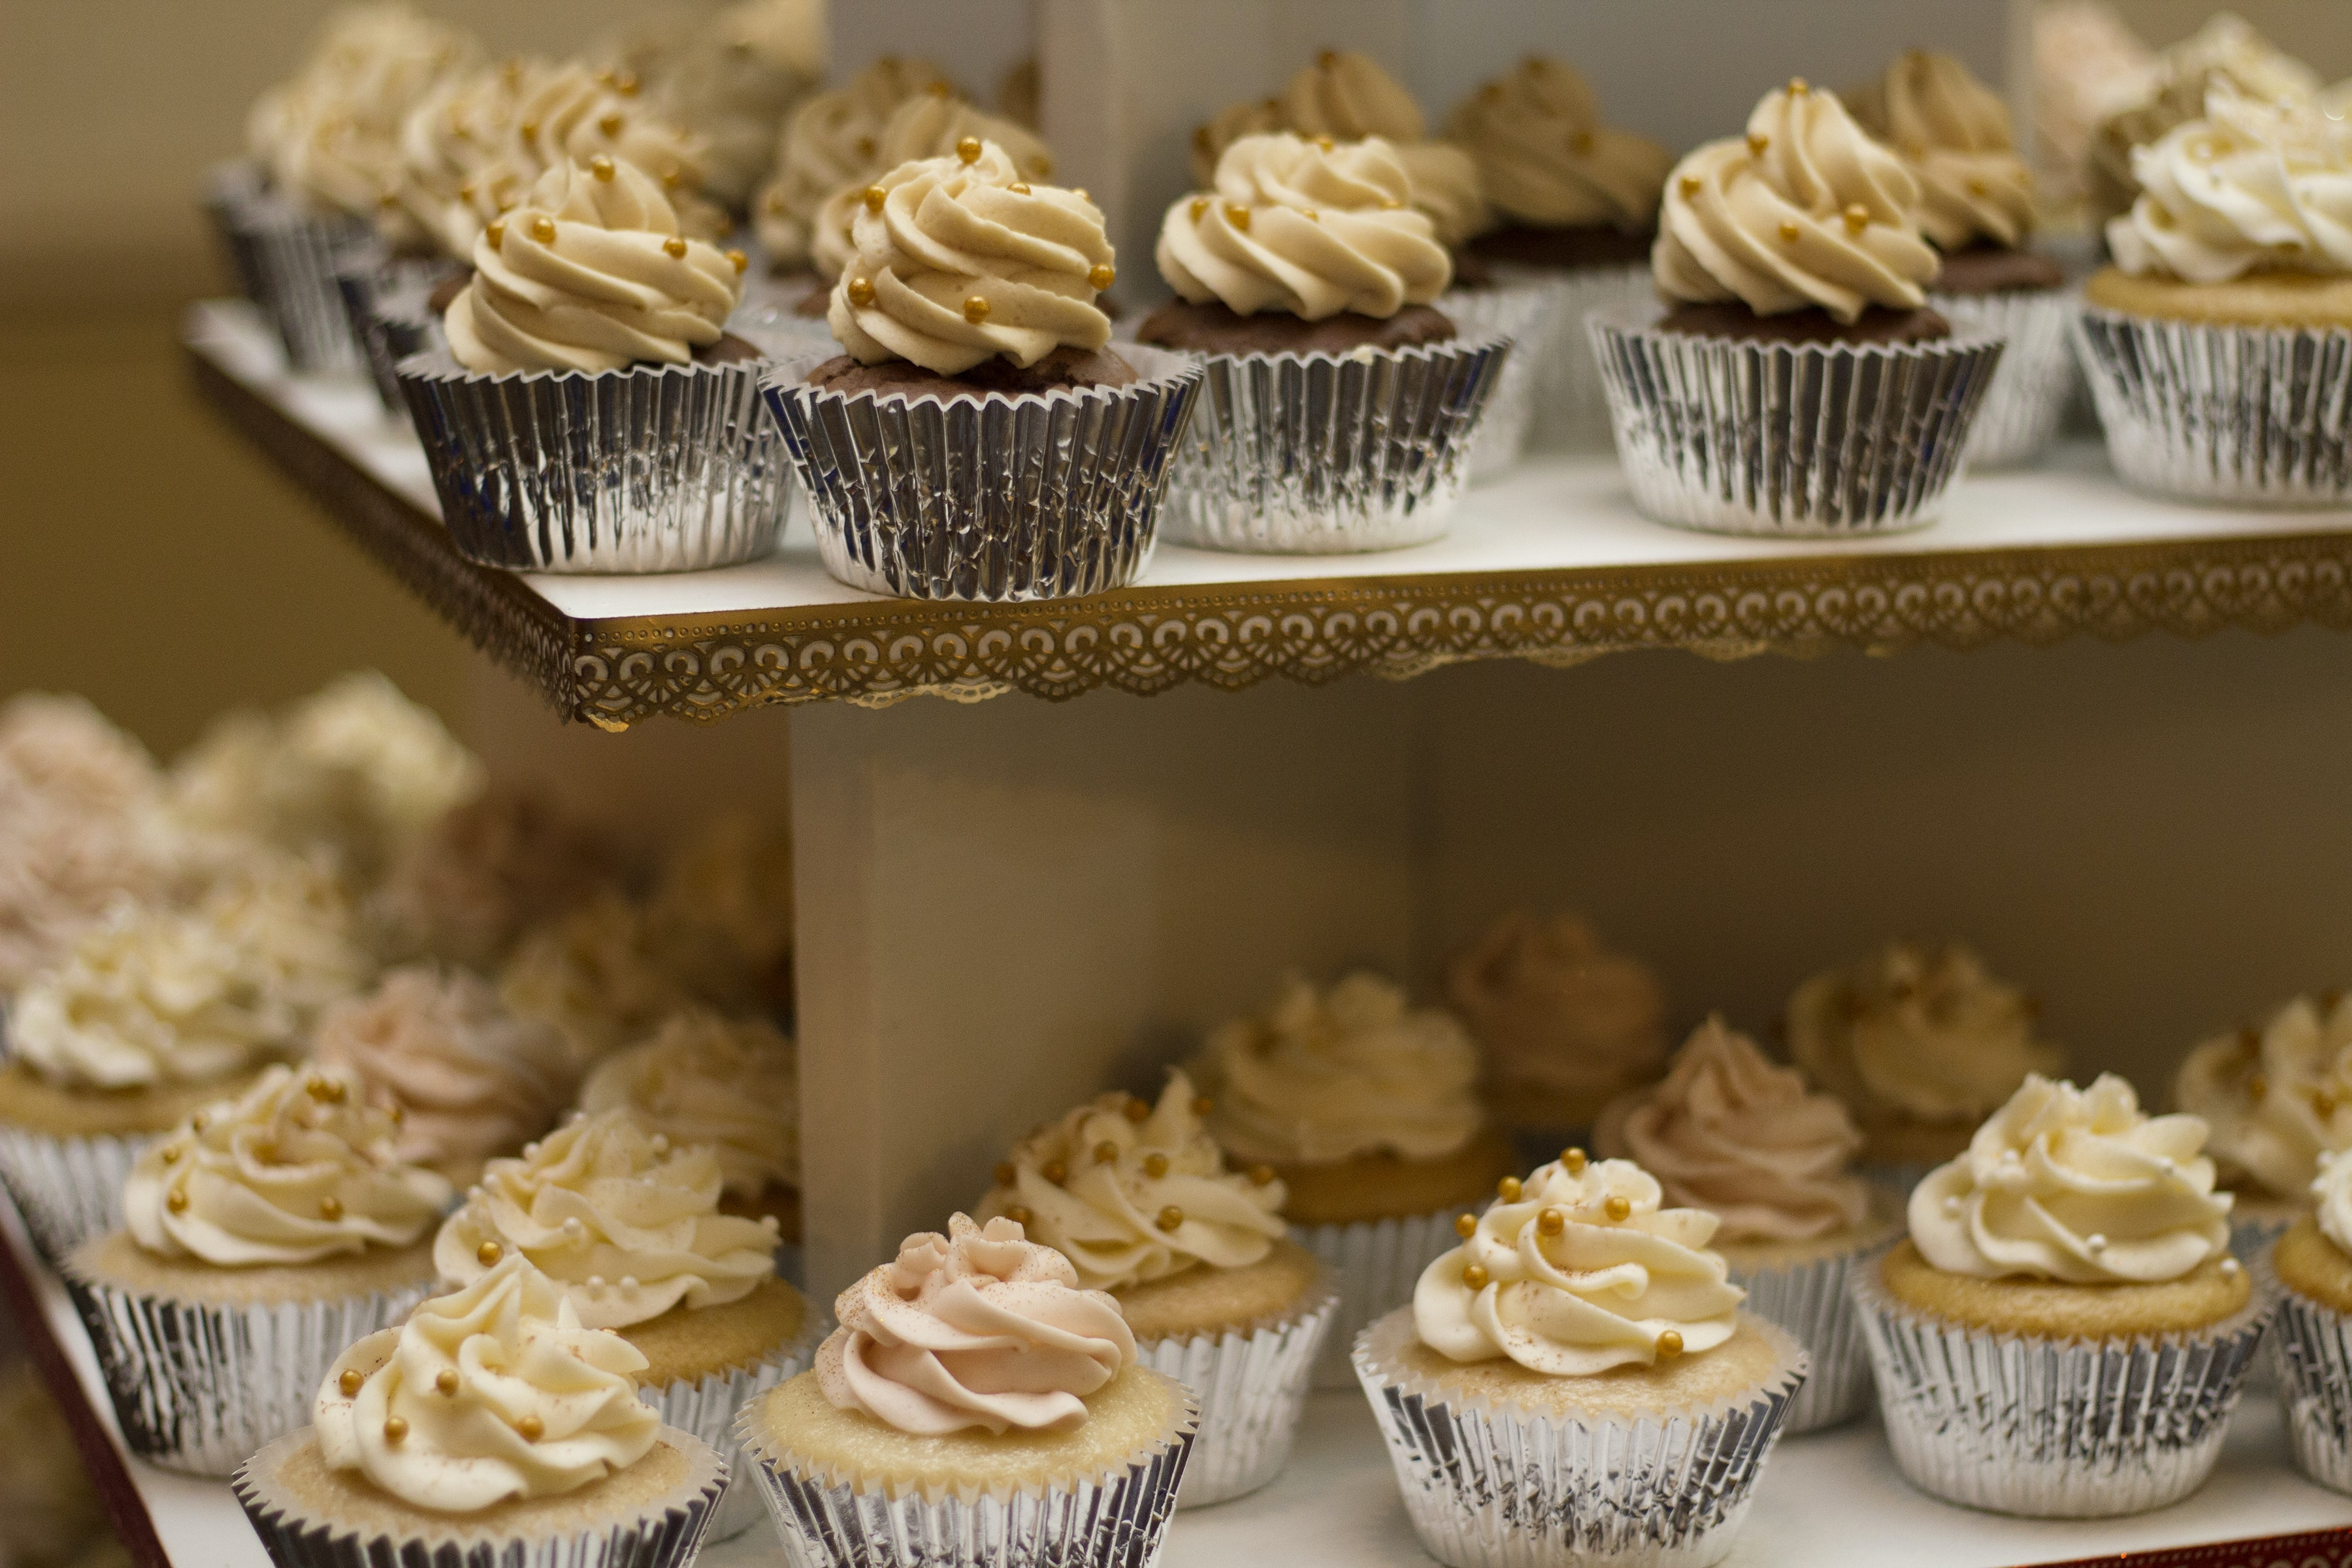 Tiers of mini cupcakes with caramel frosting